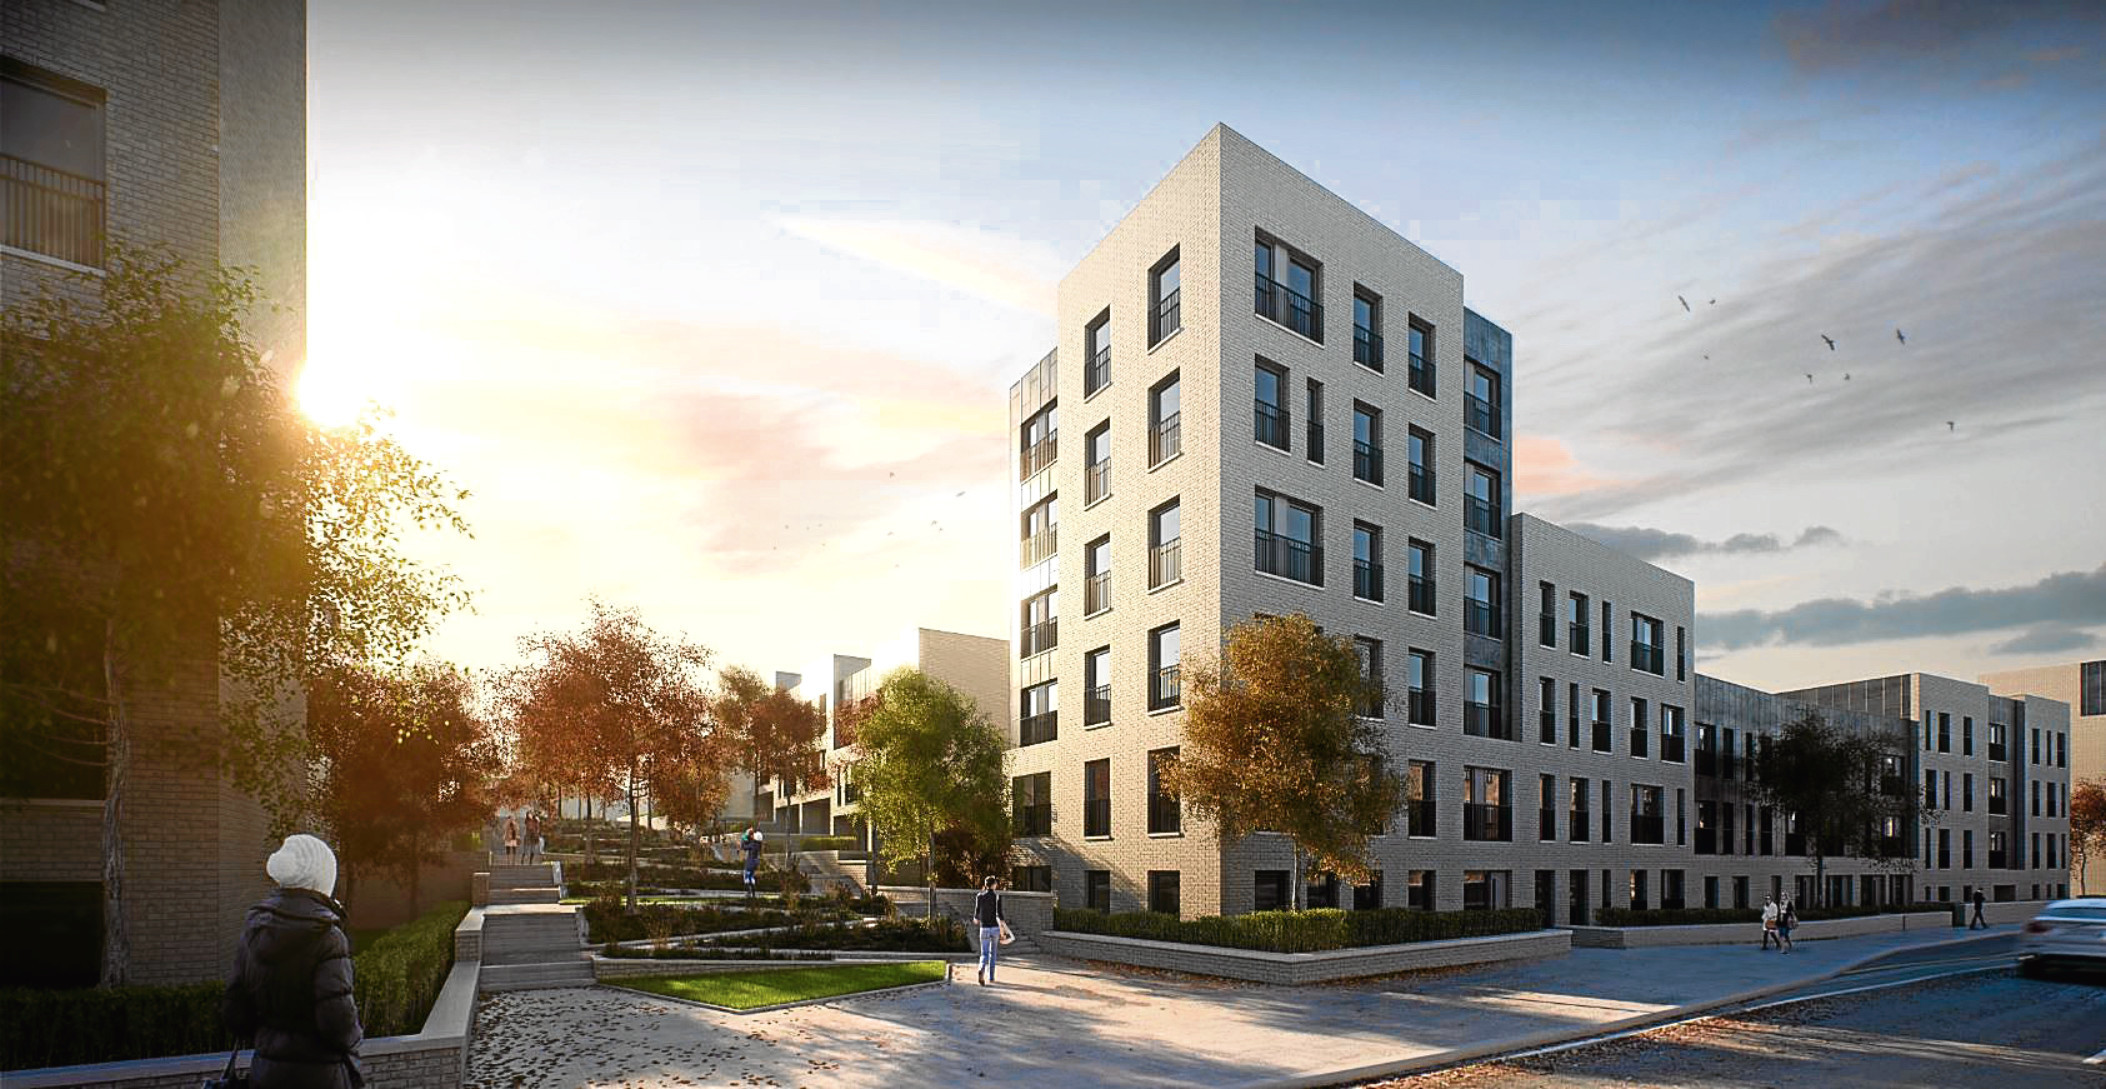 An artist's impression of the planned development at Russell Street.